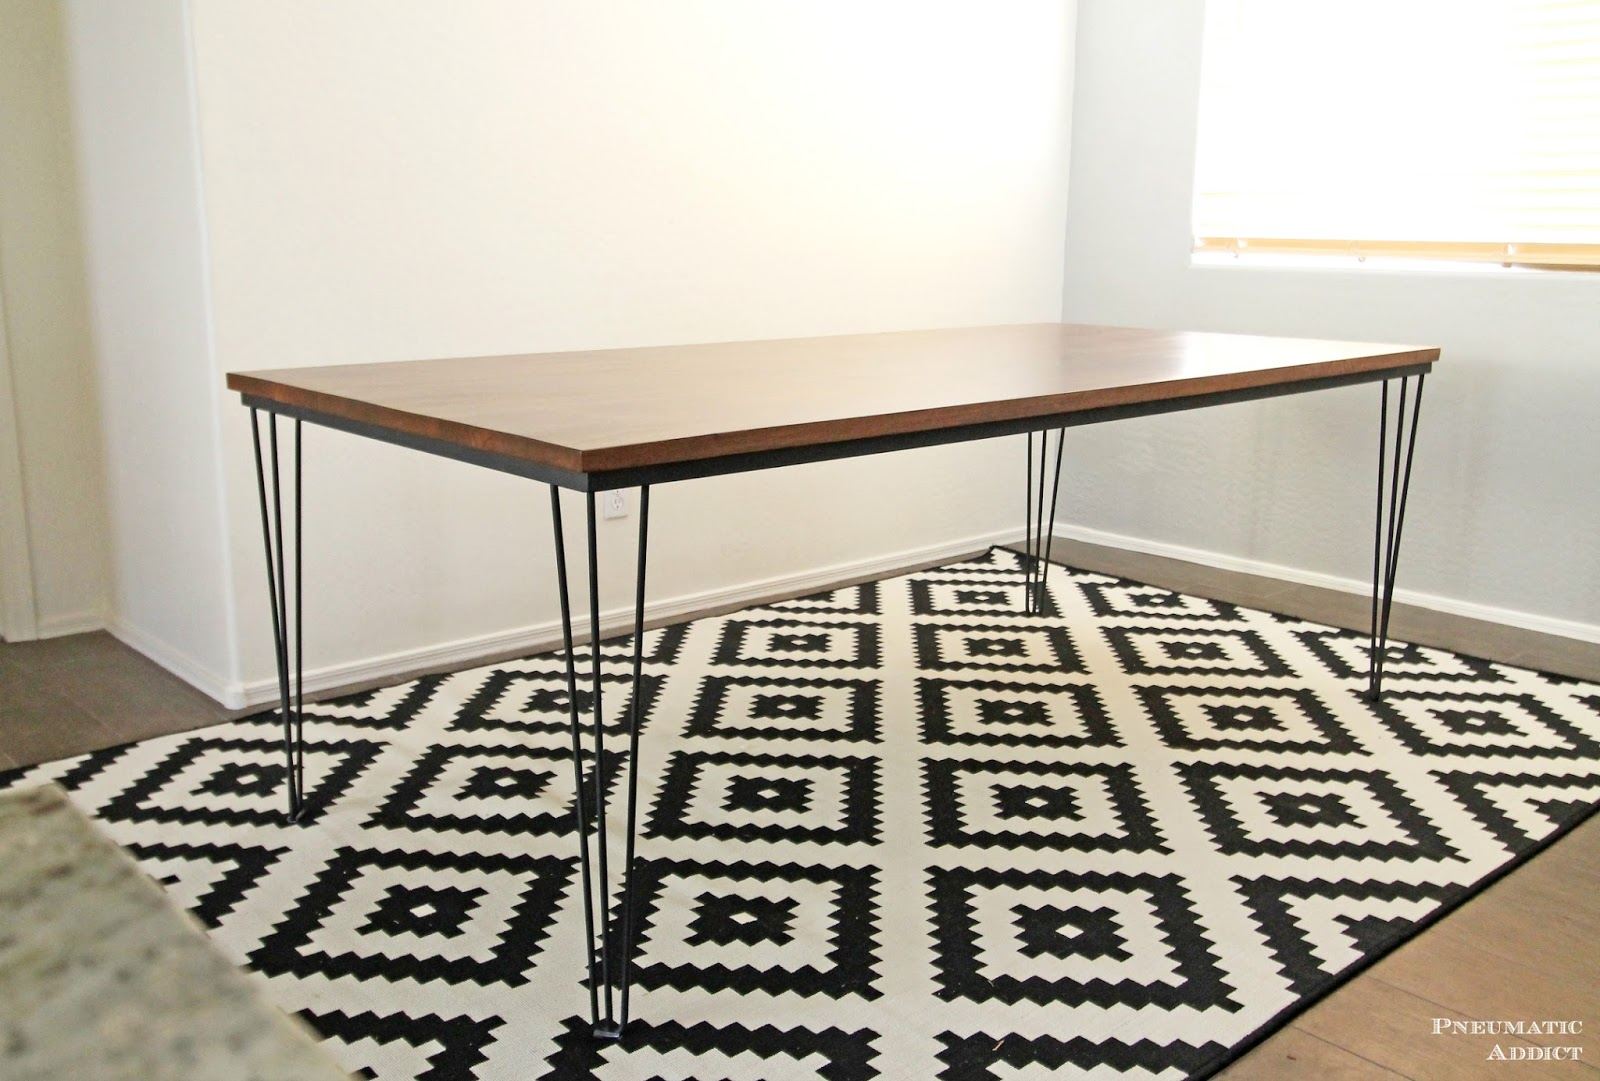 LARGE Hairpin Dining Table | Pneumatic Addict